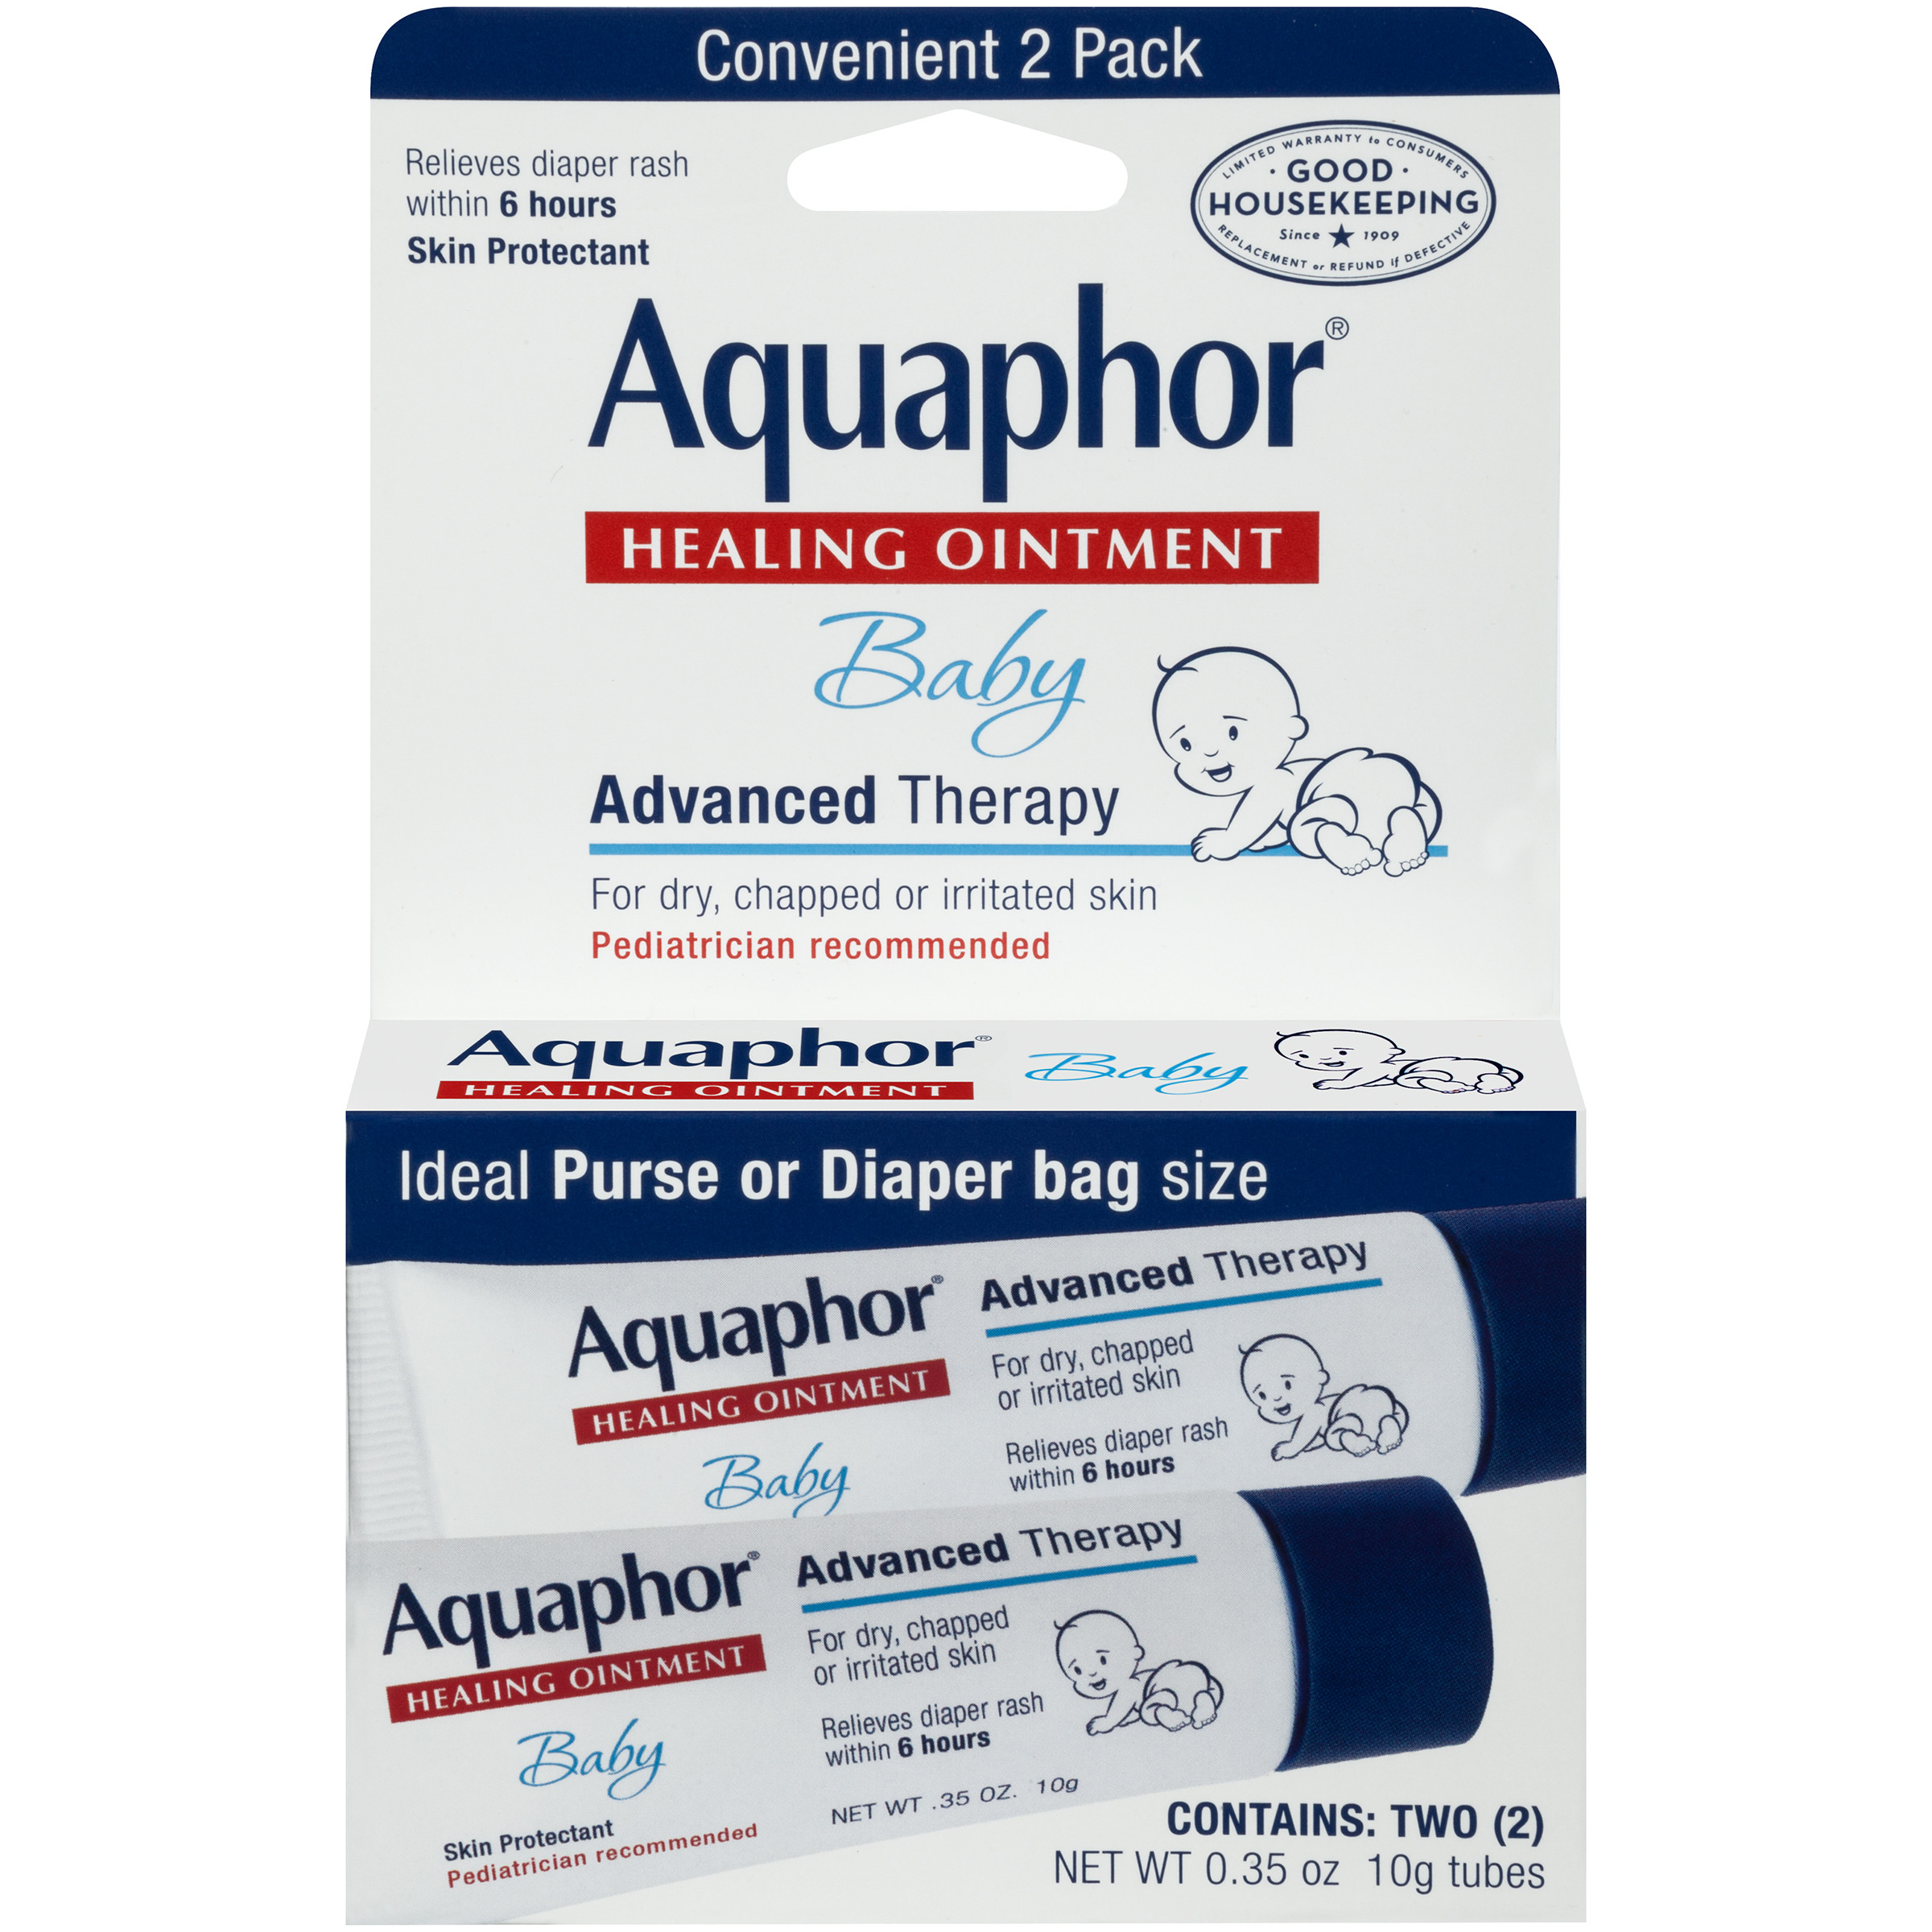 Aquaphor Baby Advanced Therapy Healing Ointment Skin Protectant 2-.35 oz. Tubes